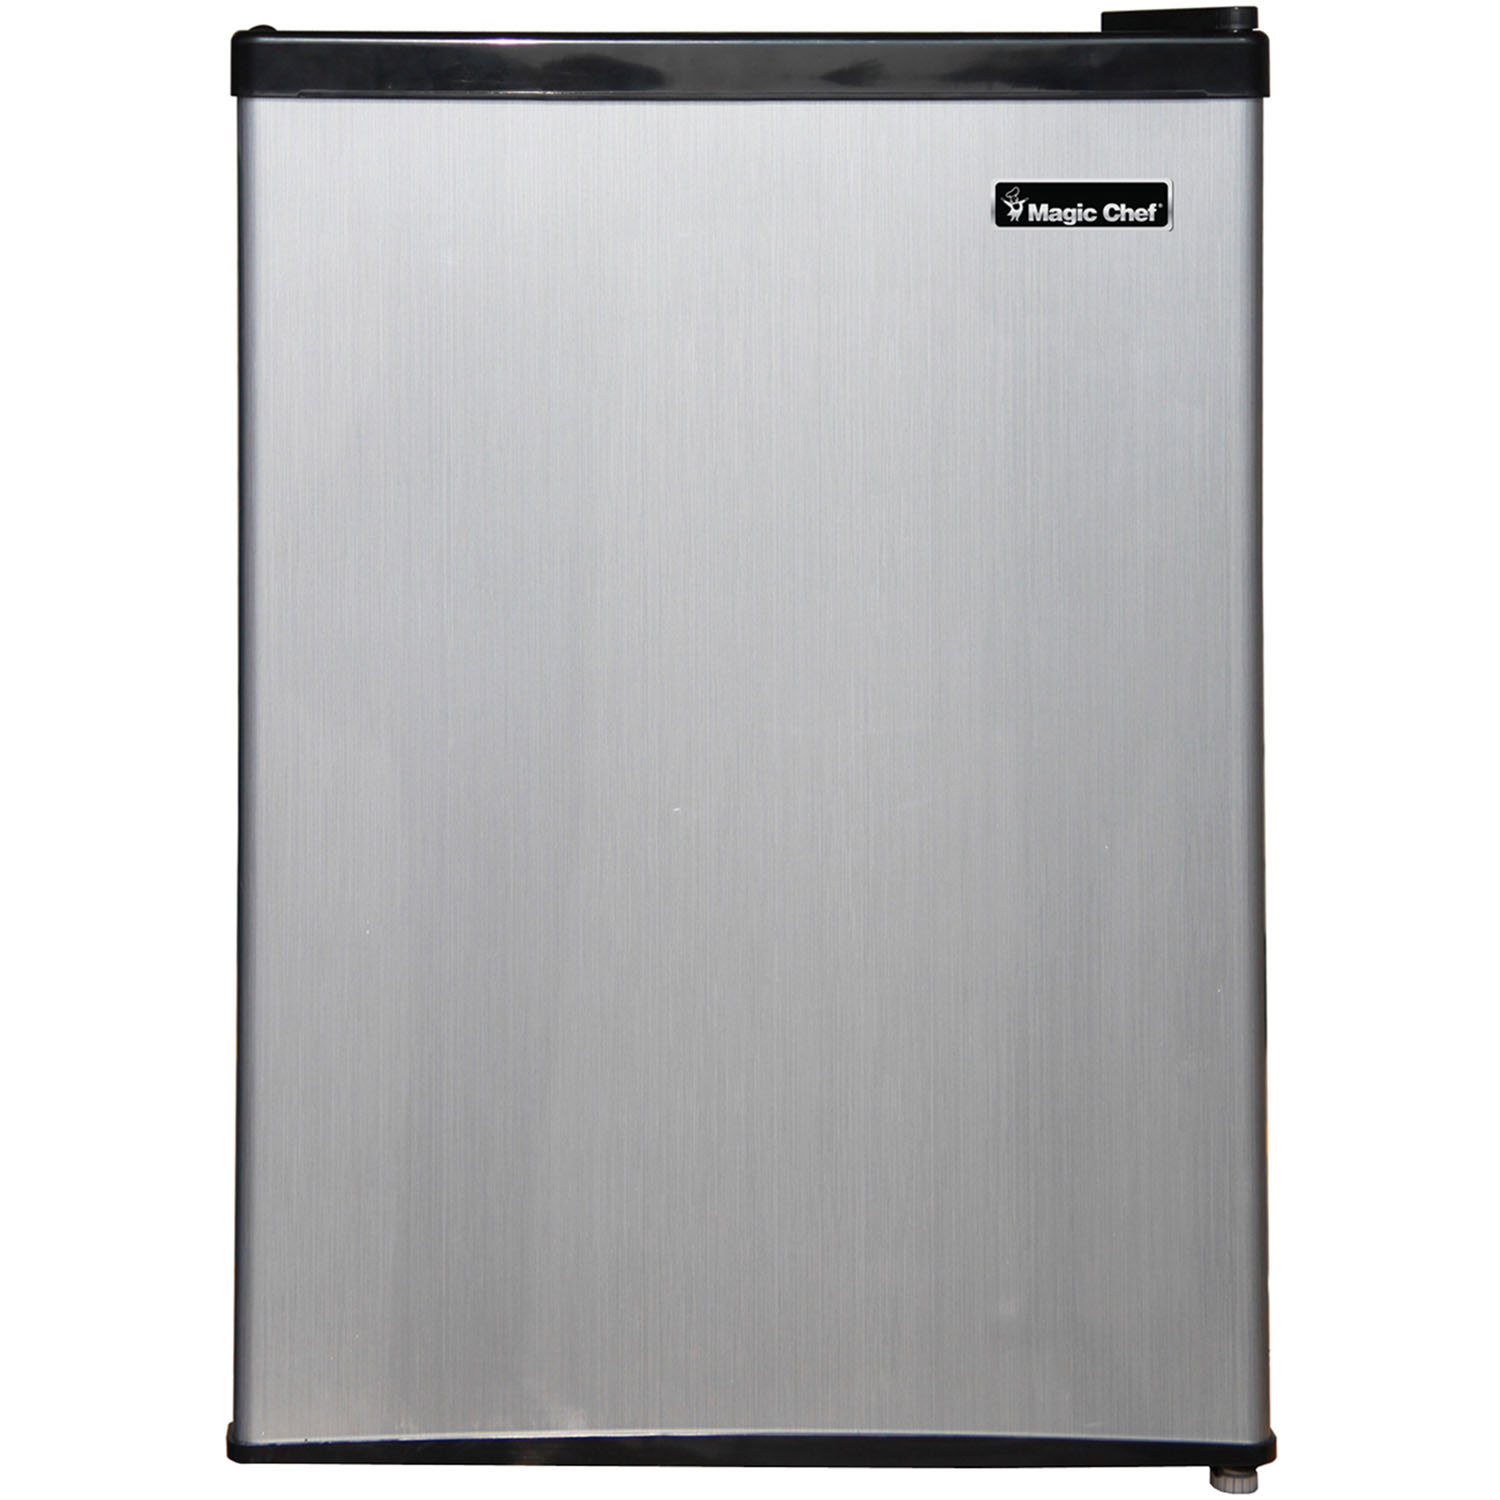 Magic Chef 2.4 Cu. Ft. Mini Refrigerator with Half-Width Freezer Compartment with Stainless Door